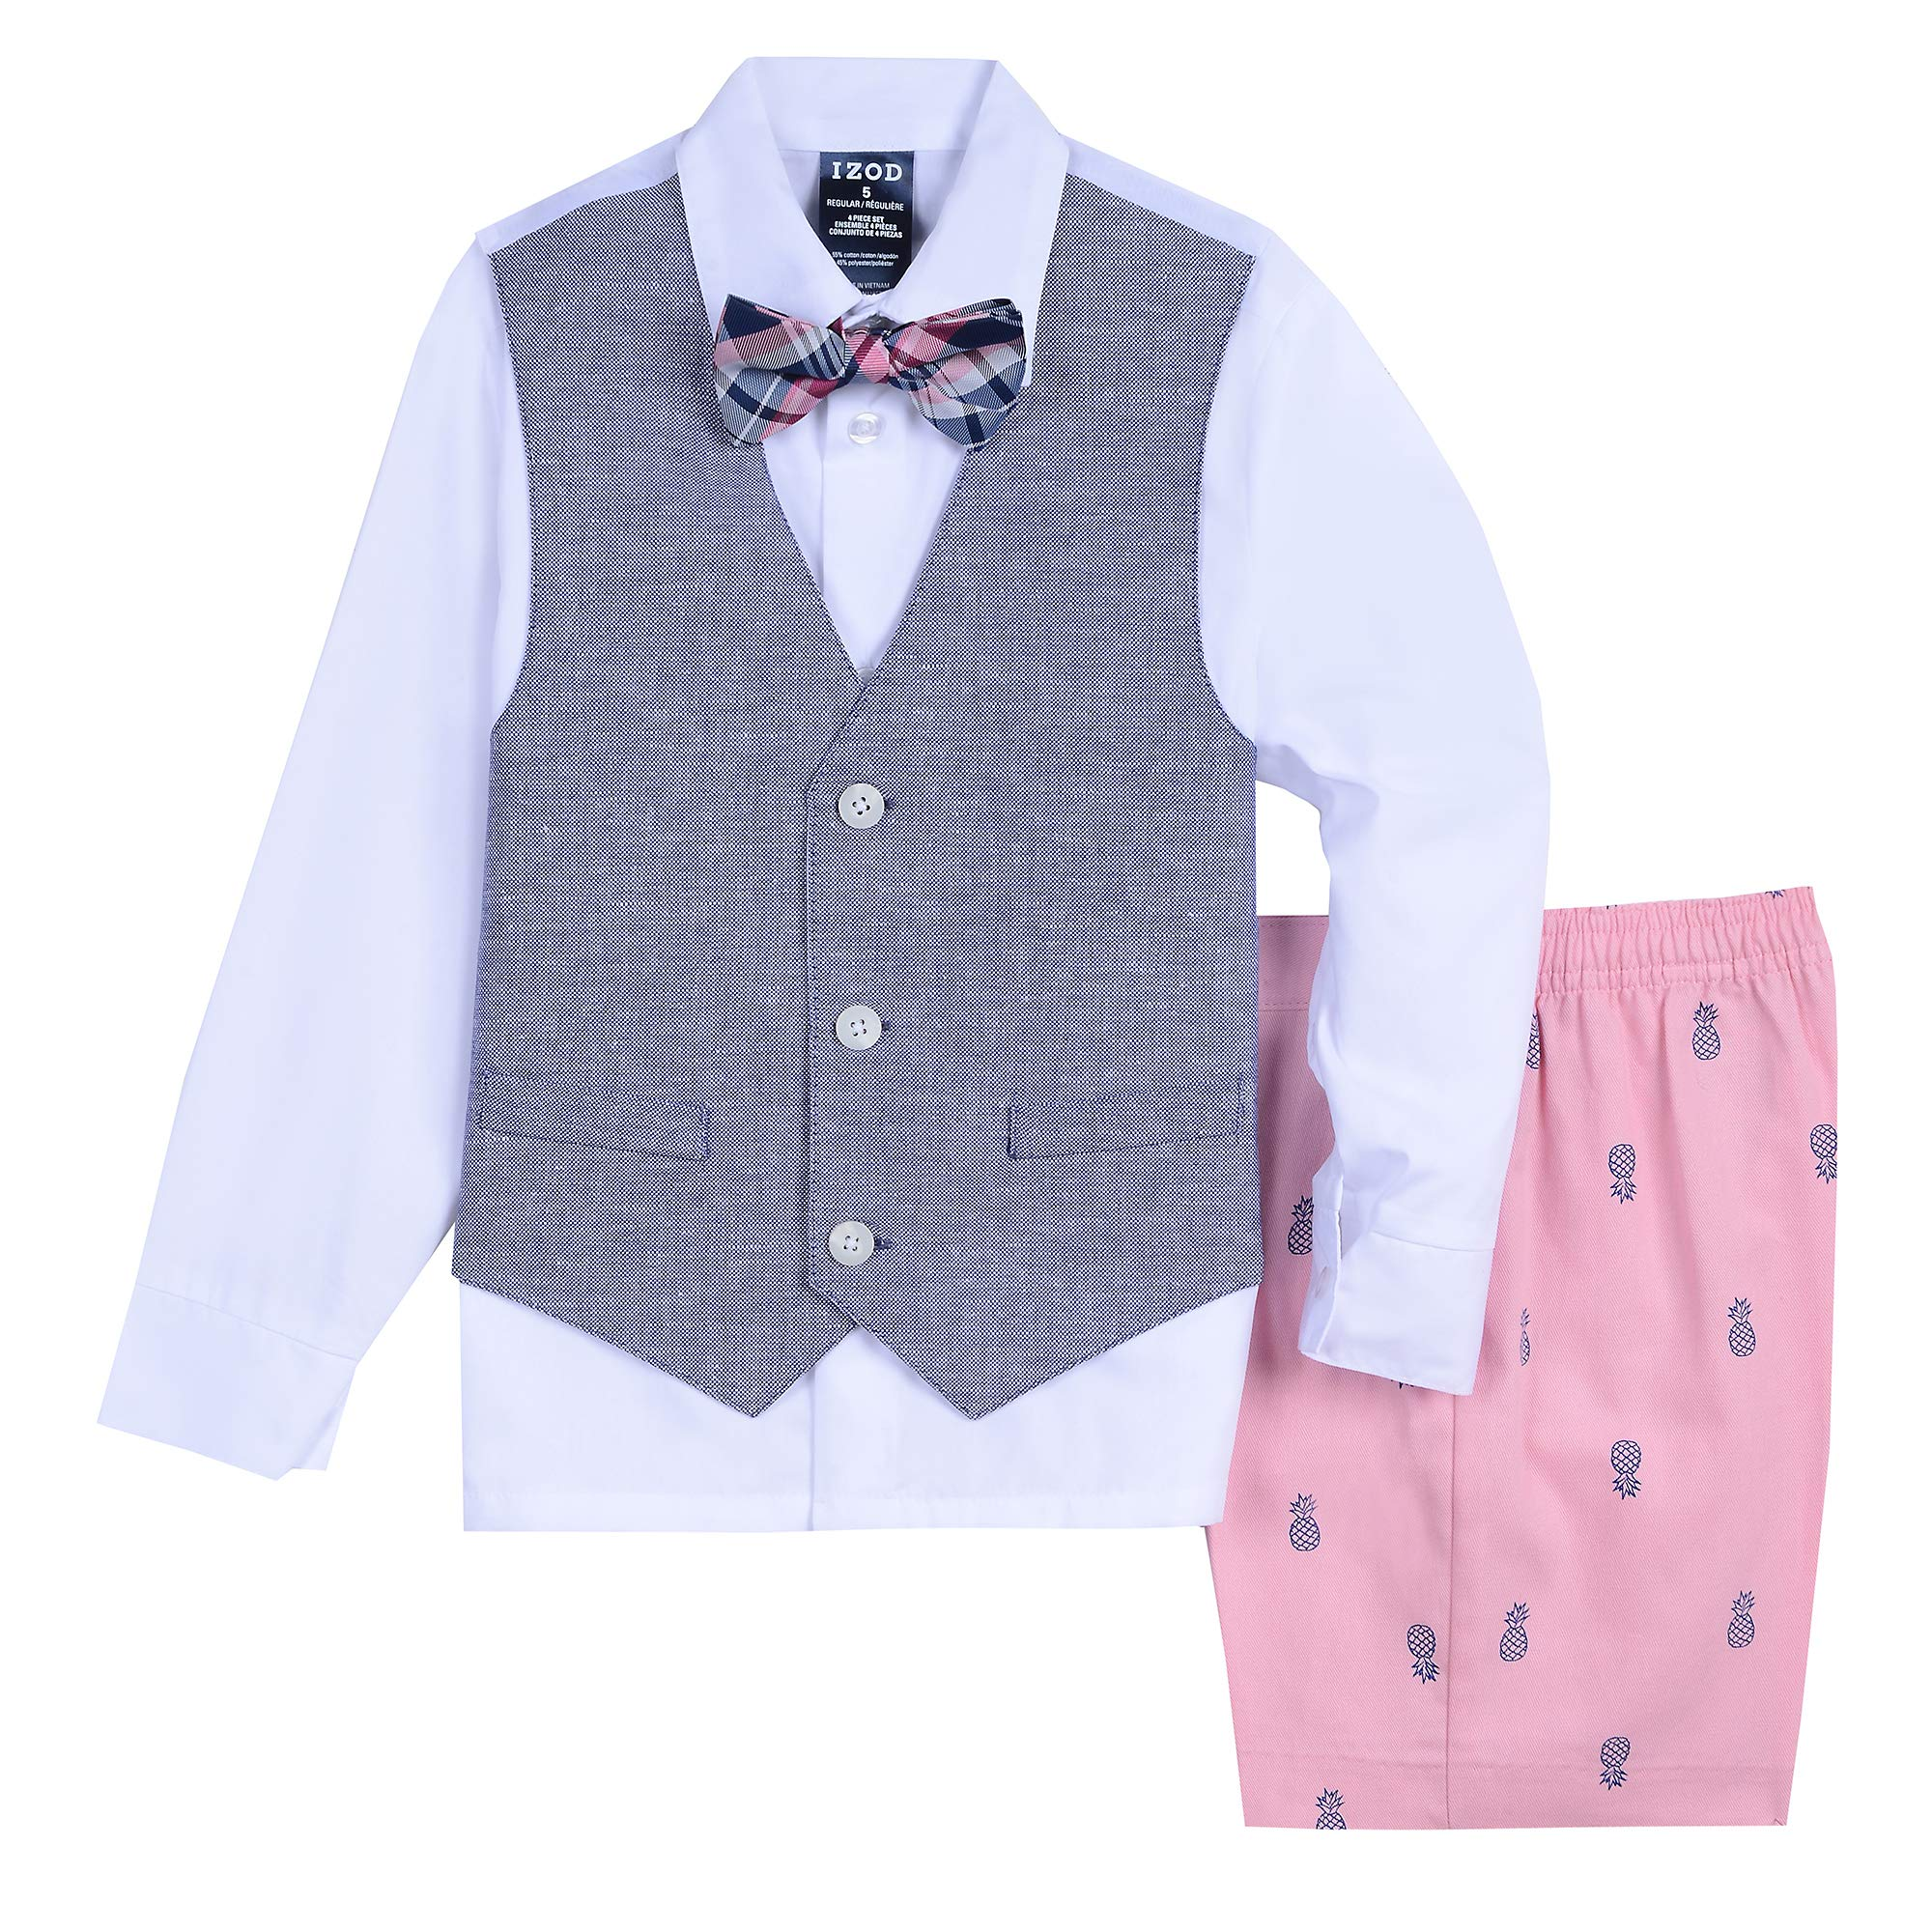 Izod Boys' 4-Piece Vest Set with Dress Shirt, Bow Tie, Shorts, and Vest